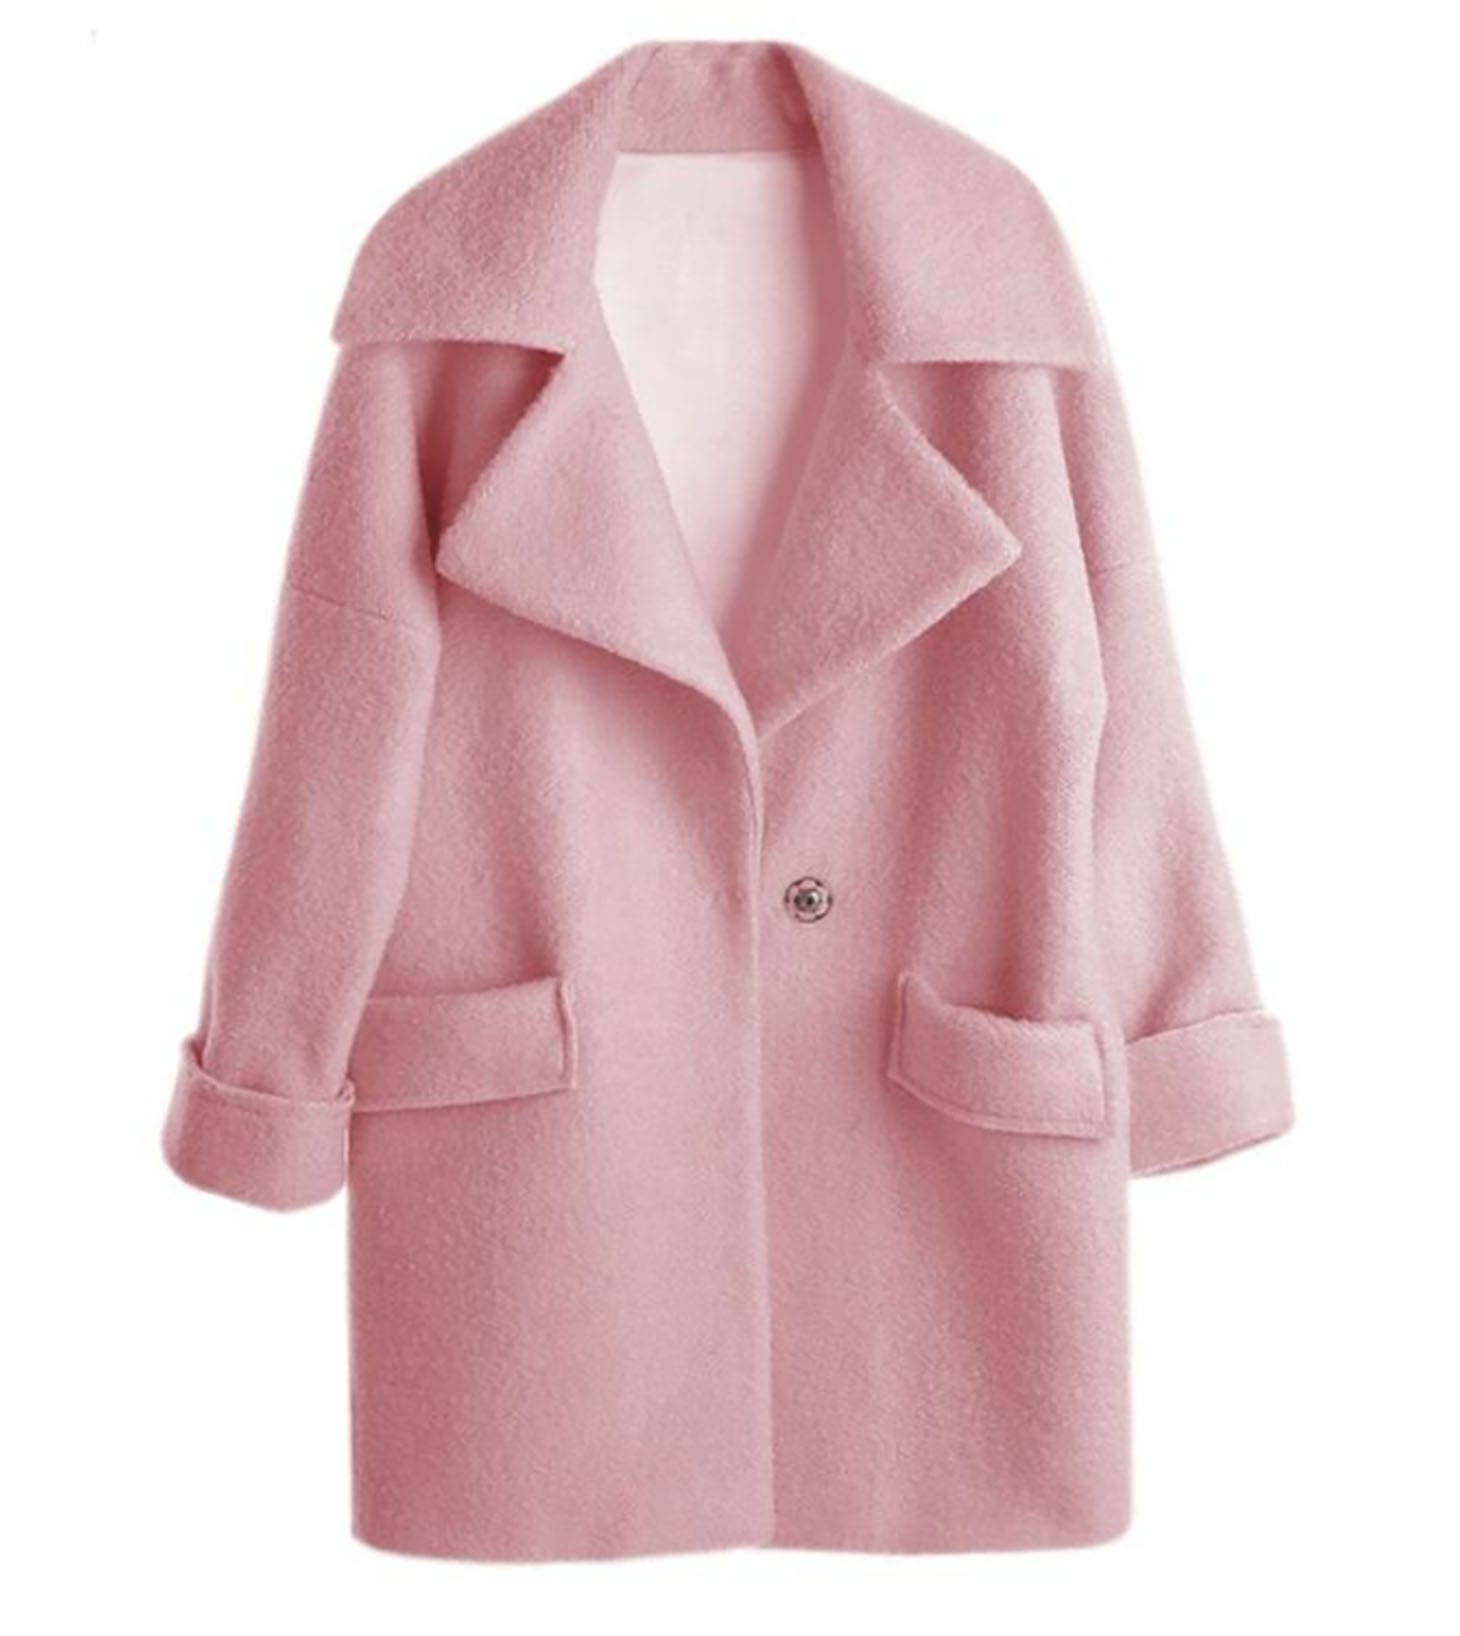 Jillian Harris Winter Coat Guide